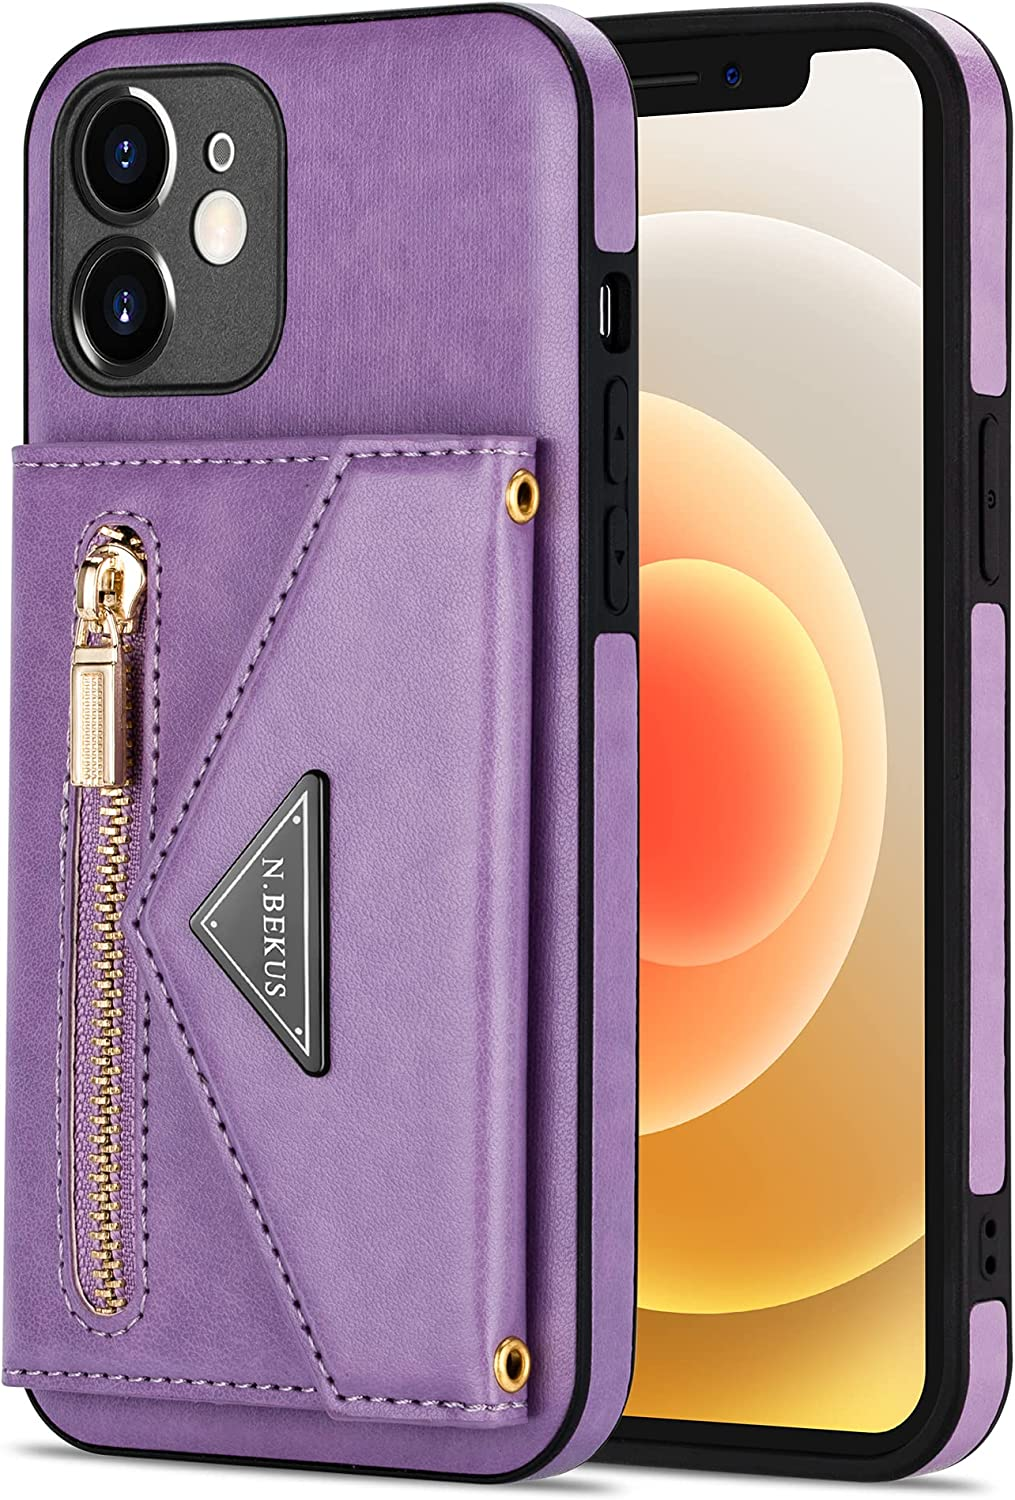 Crossbody Wallet Case for Samsung Galaxy S20FE with Card Holder, Zipper Back Flip Card Slot Protector Shockproof Purse PU Leather Cover with Removable Cross Body Strap (Purple)